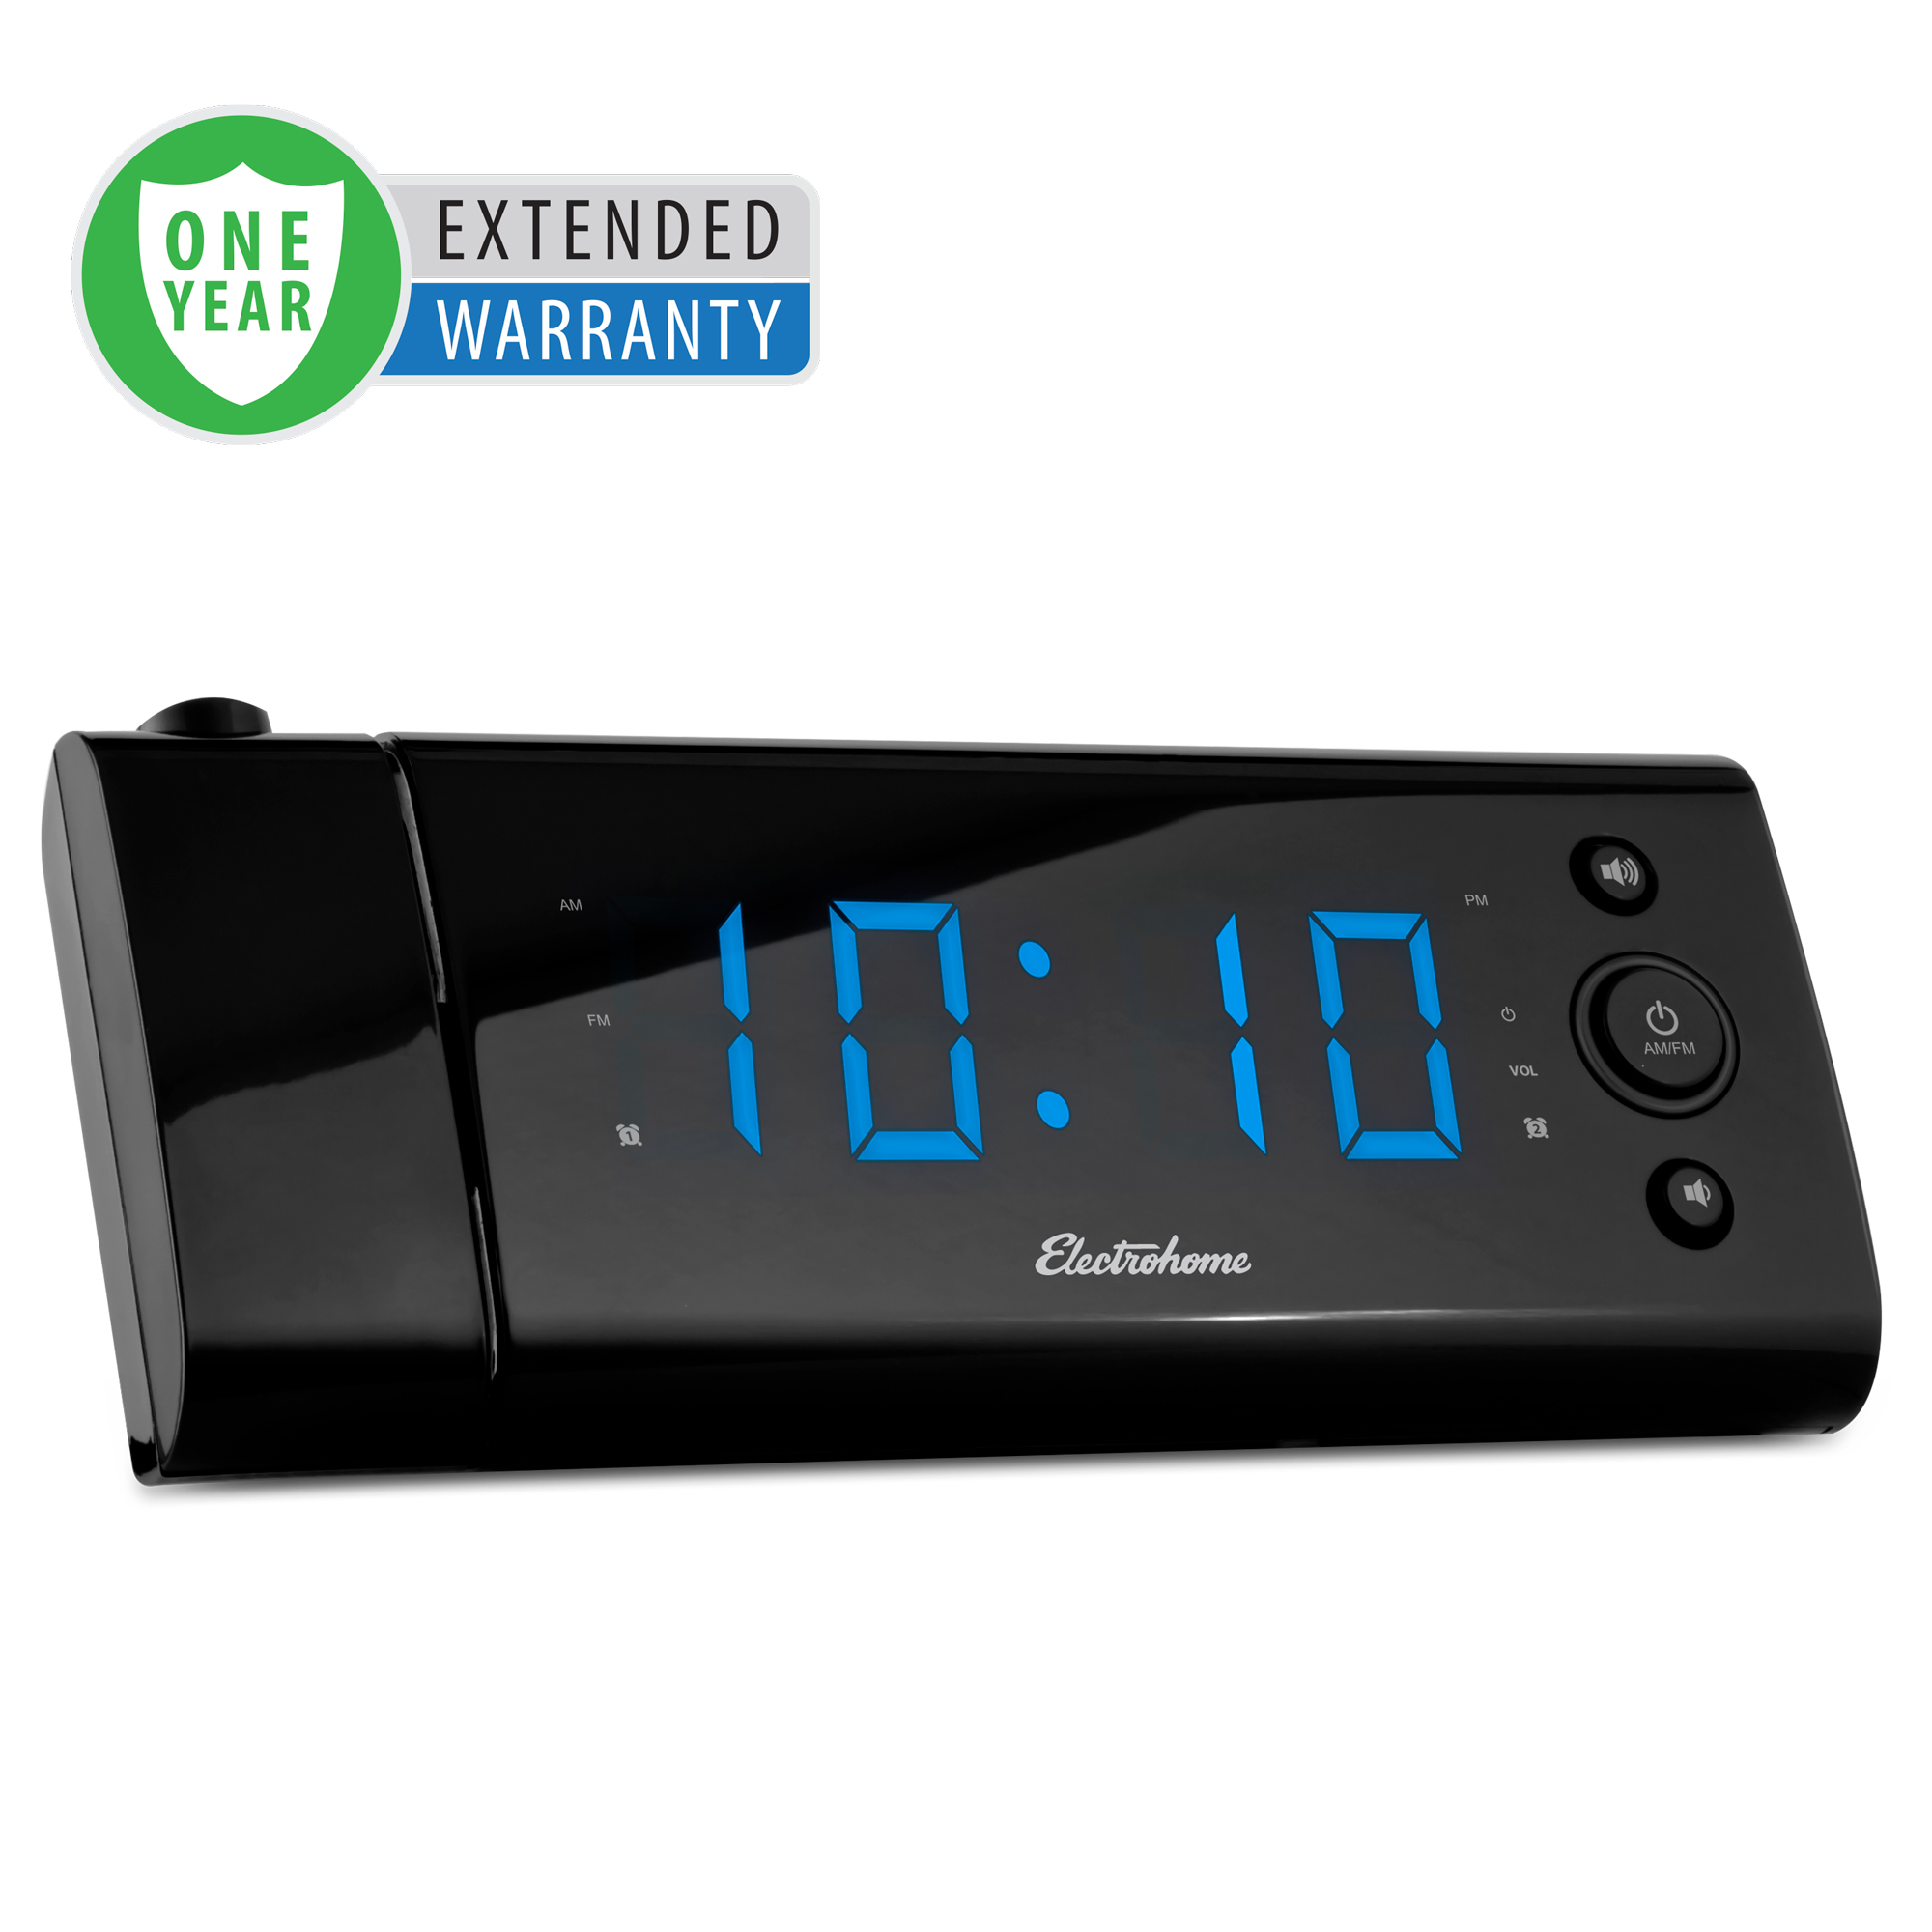 """Electrohome USB Charging Alarm Clock Radio with Time Projection, Battery Backup, Auto Time Set, Dual Alarm, 1.2"""" LED Display for Smartphones & Tablets - 1 Year Extended Warranty"""